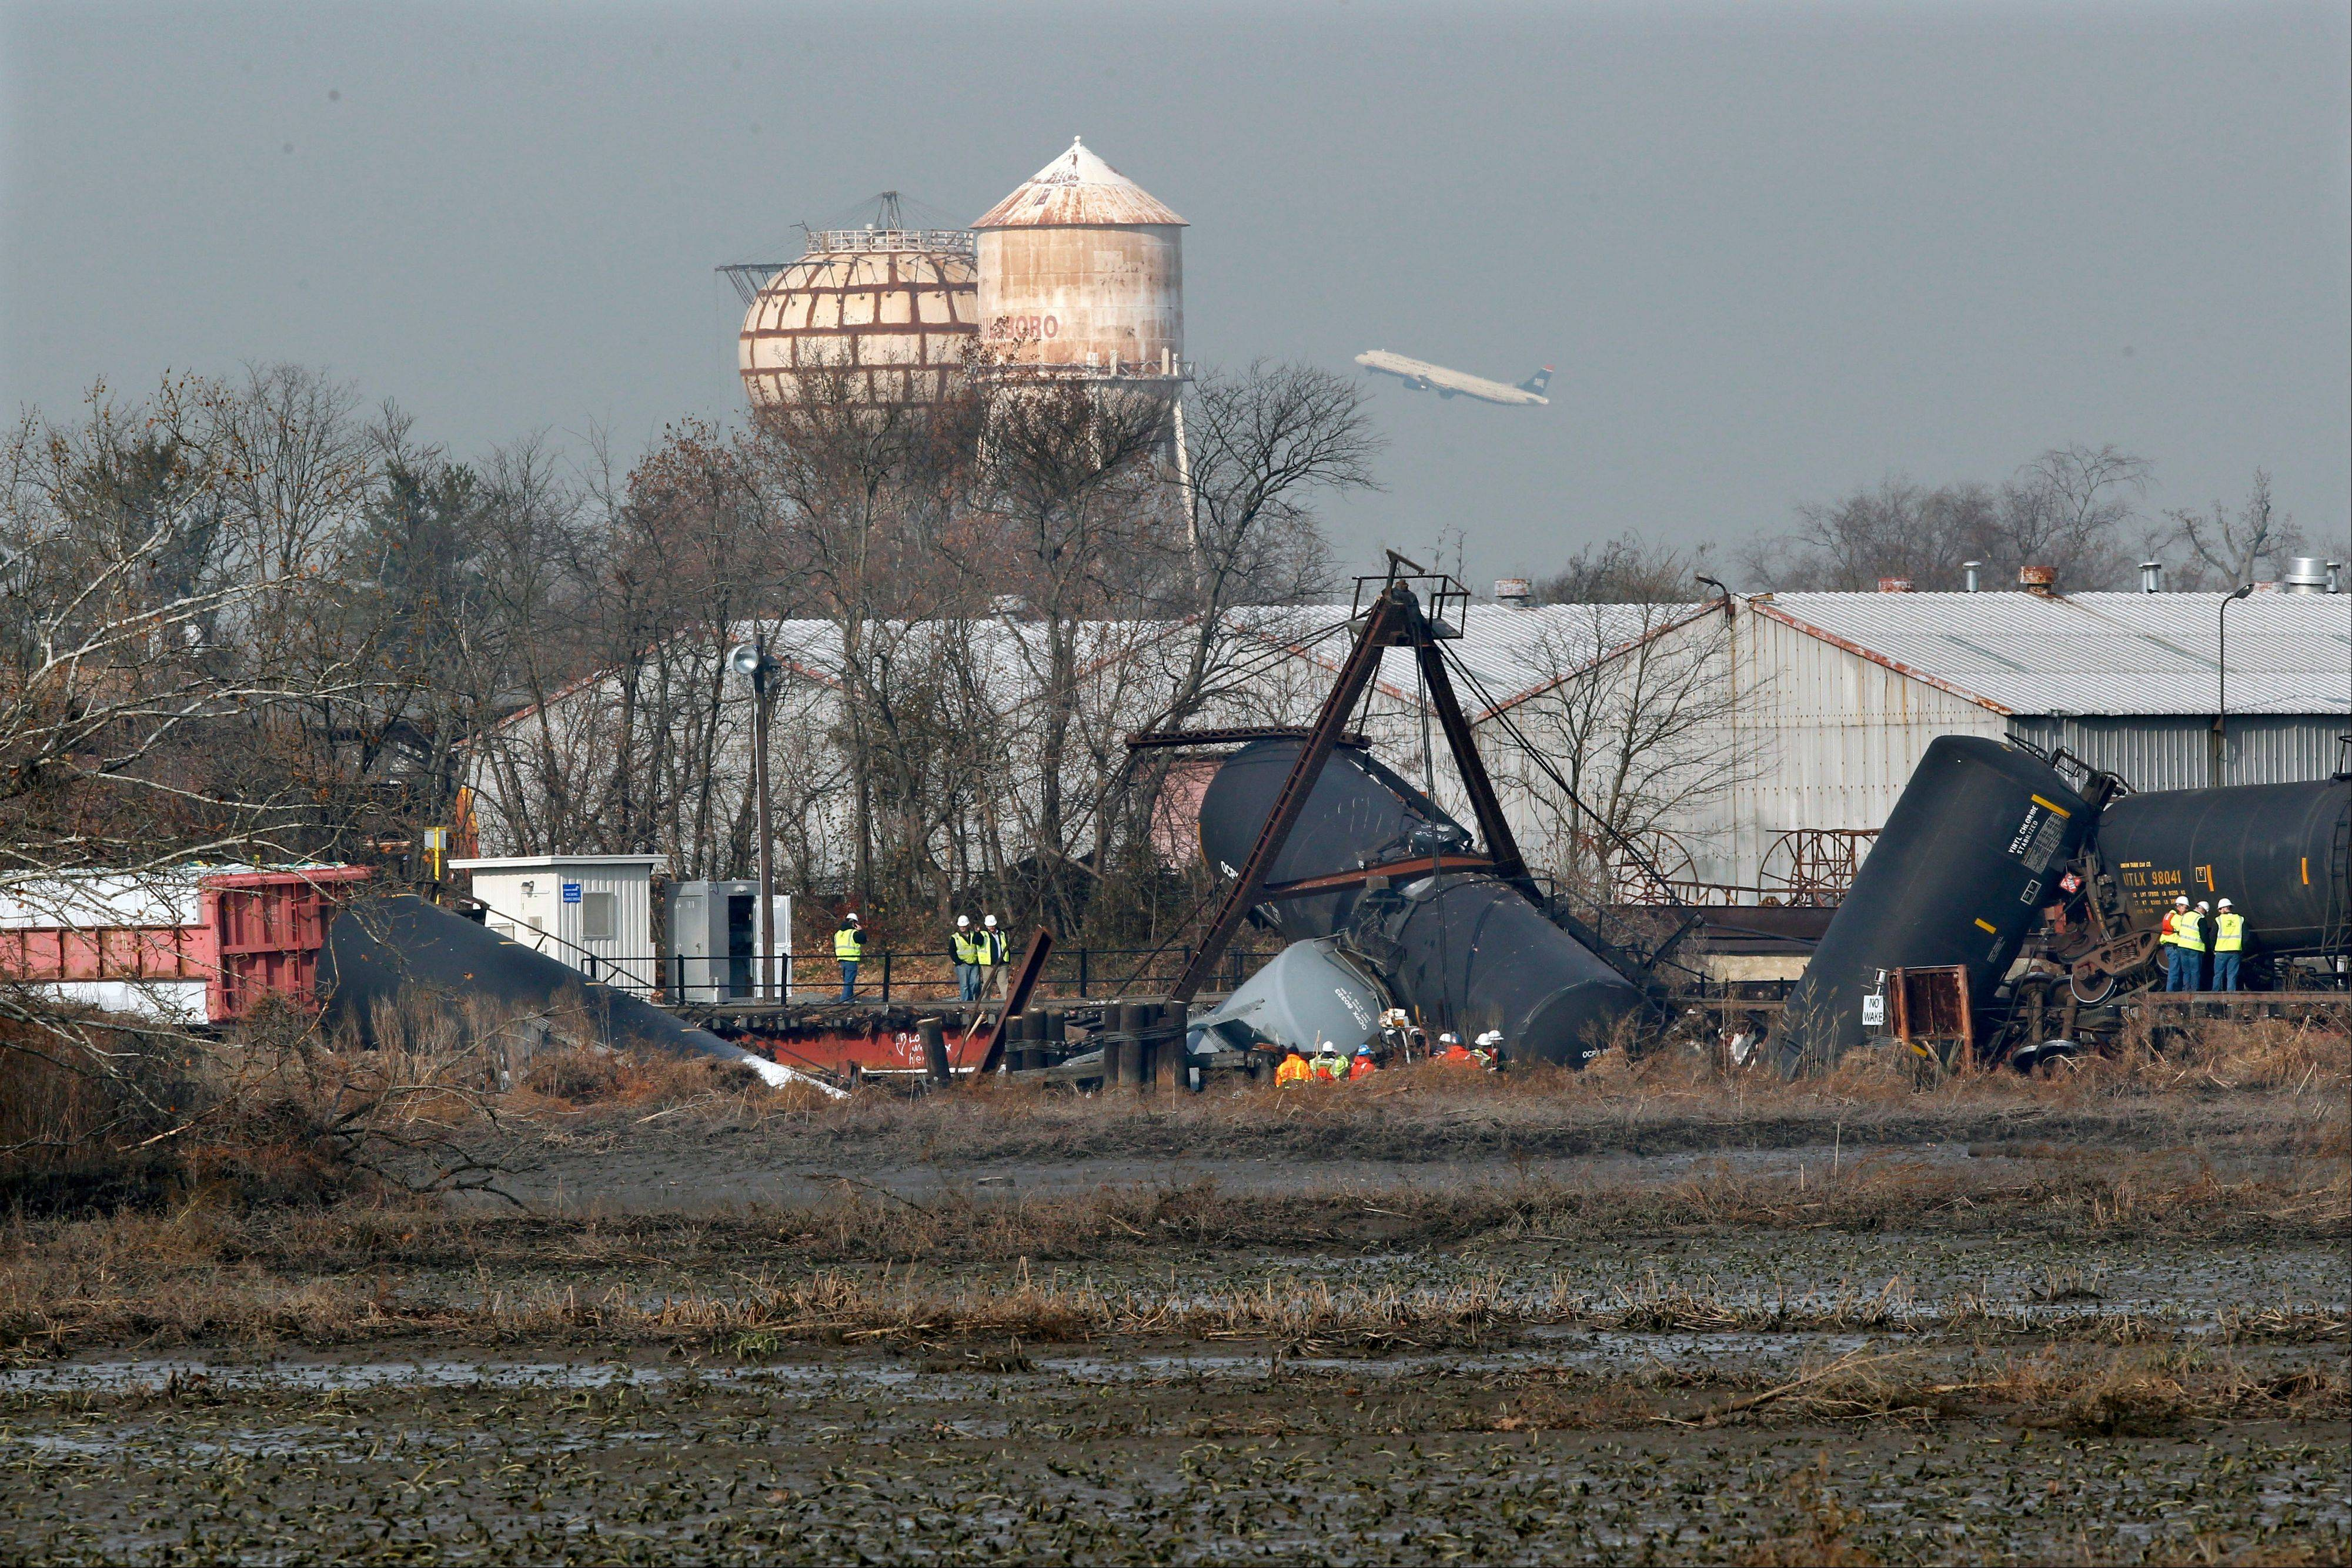 Officials work the scene of derailed freight train tank cars on Friday in Paulsboro, N.J. Residents of Paulsboro were ordered to stay inside and schools were closed Monday after unsafe levels of the chemical vinyl chloride were found in the air near where the train derailed last week.